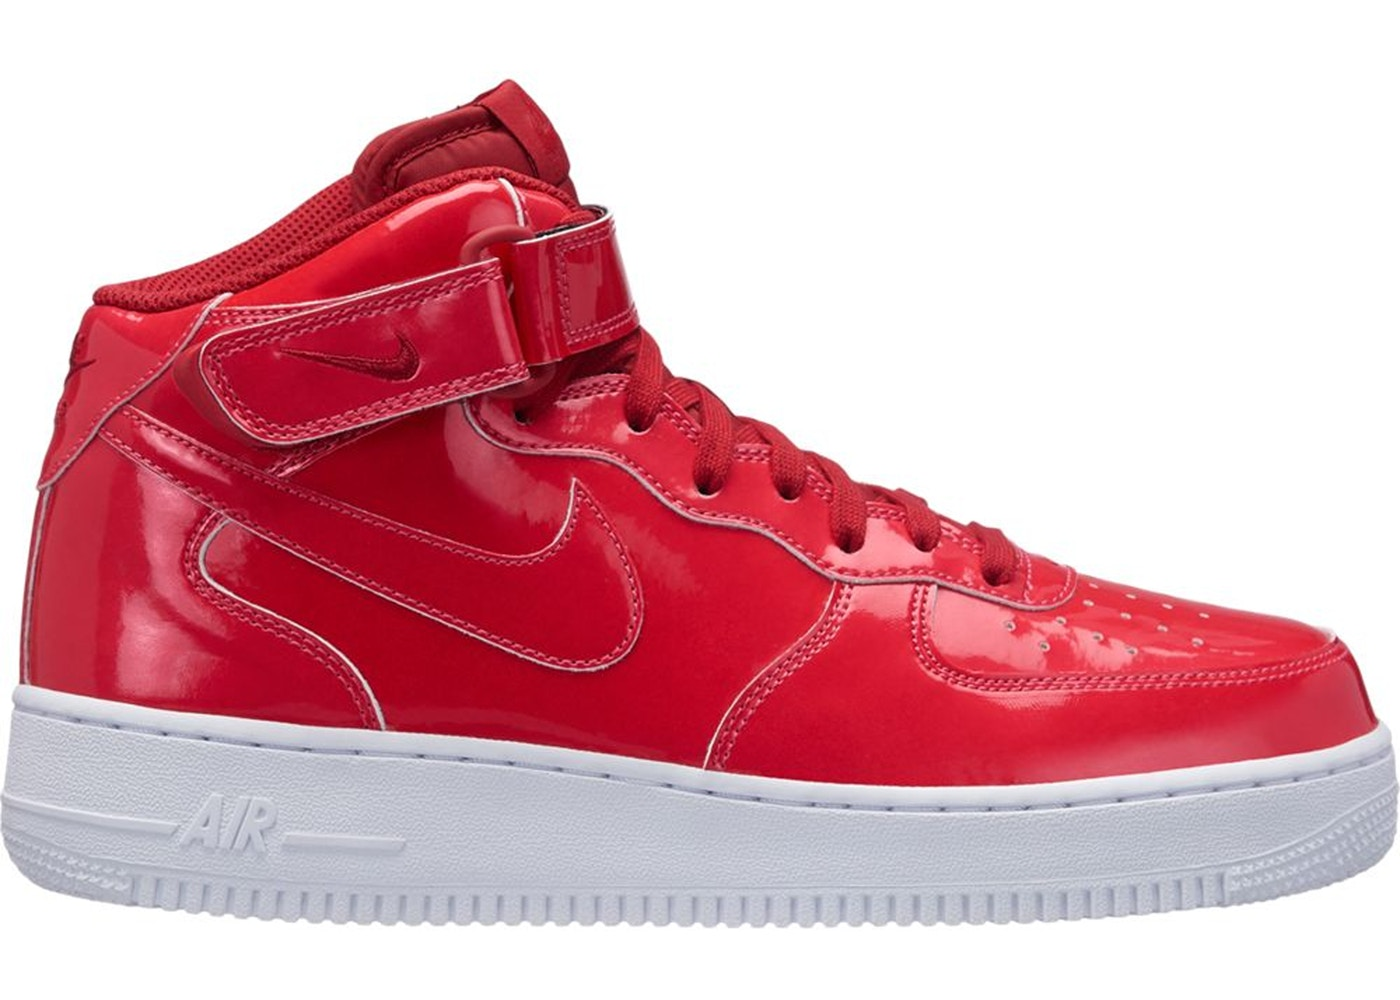 ナイキ NIKE エア ミッド スニーカー 【 AIR FORCE 1 MID ULTRAVIOLET SIREN RED REDWHITEWHITE 】 メンズ